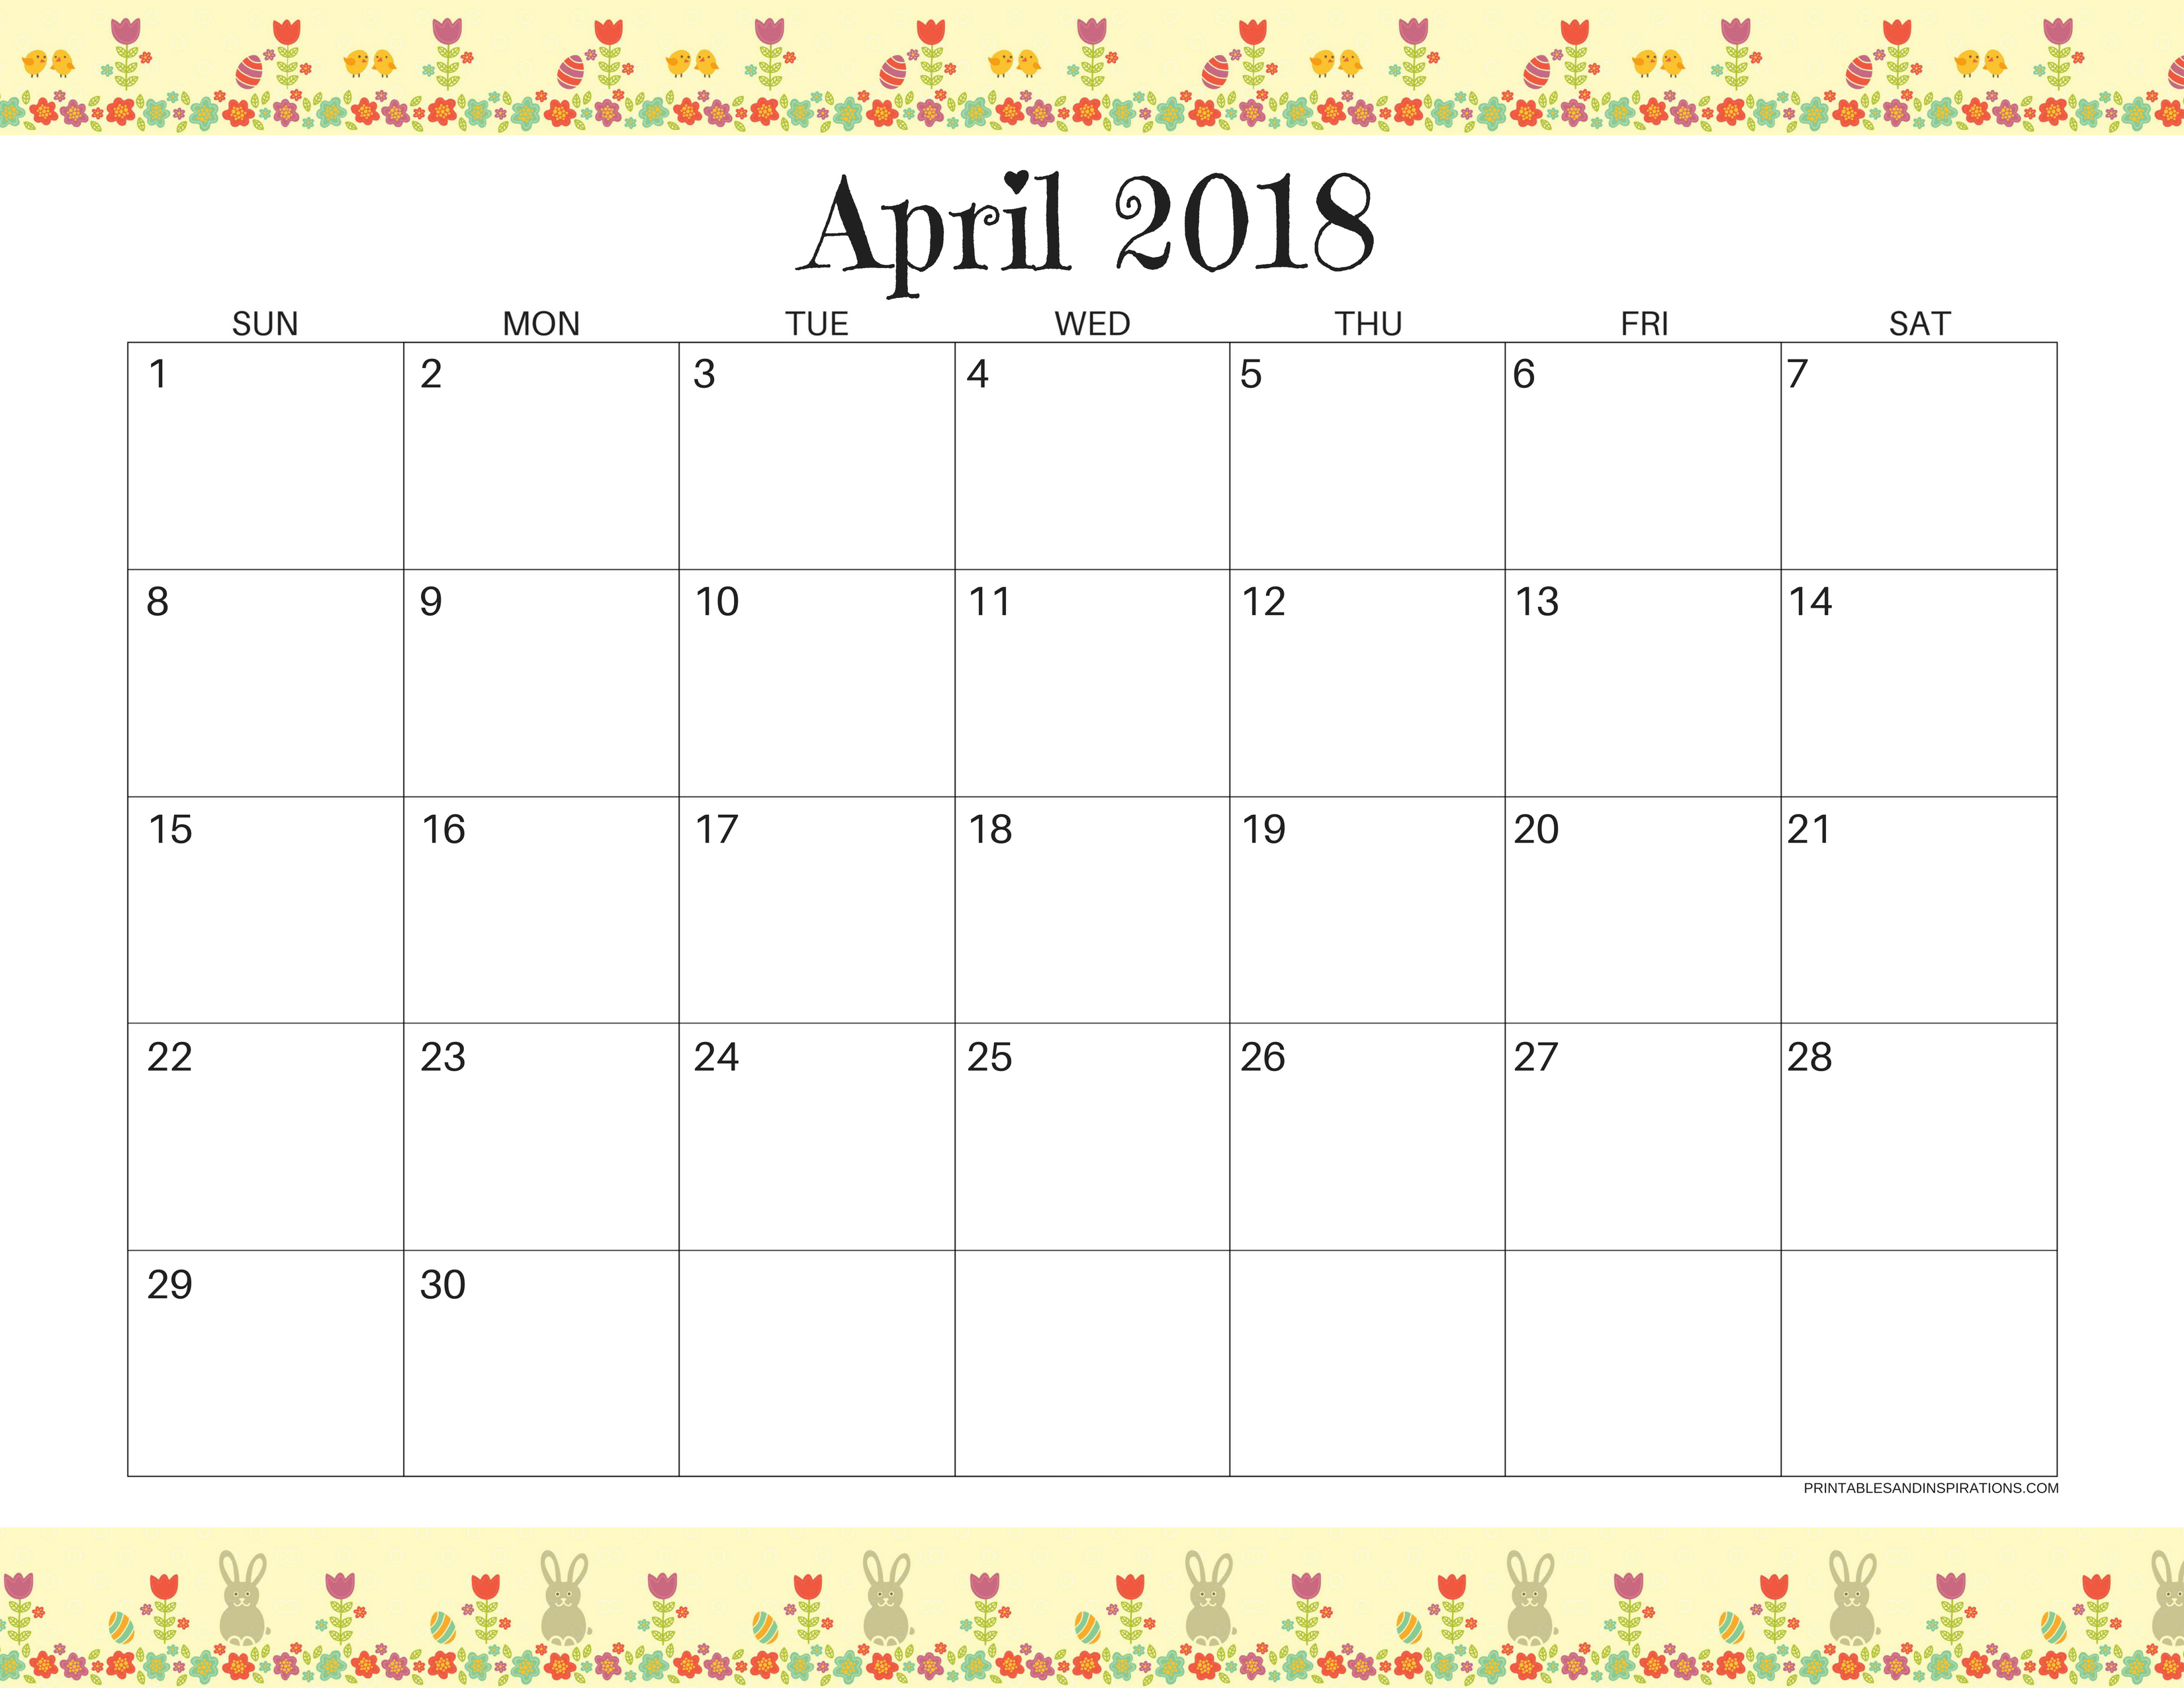 picture relating to Free Printable April Calendar titled April 2018 Calendar - No cost Printables For Your self! - Printables